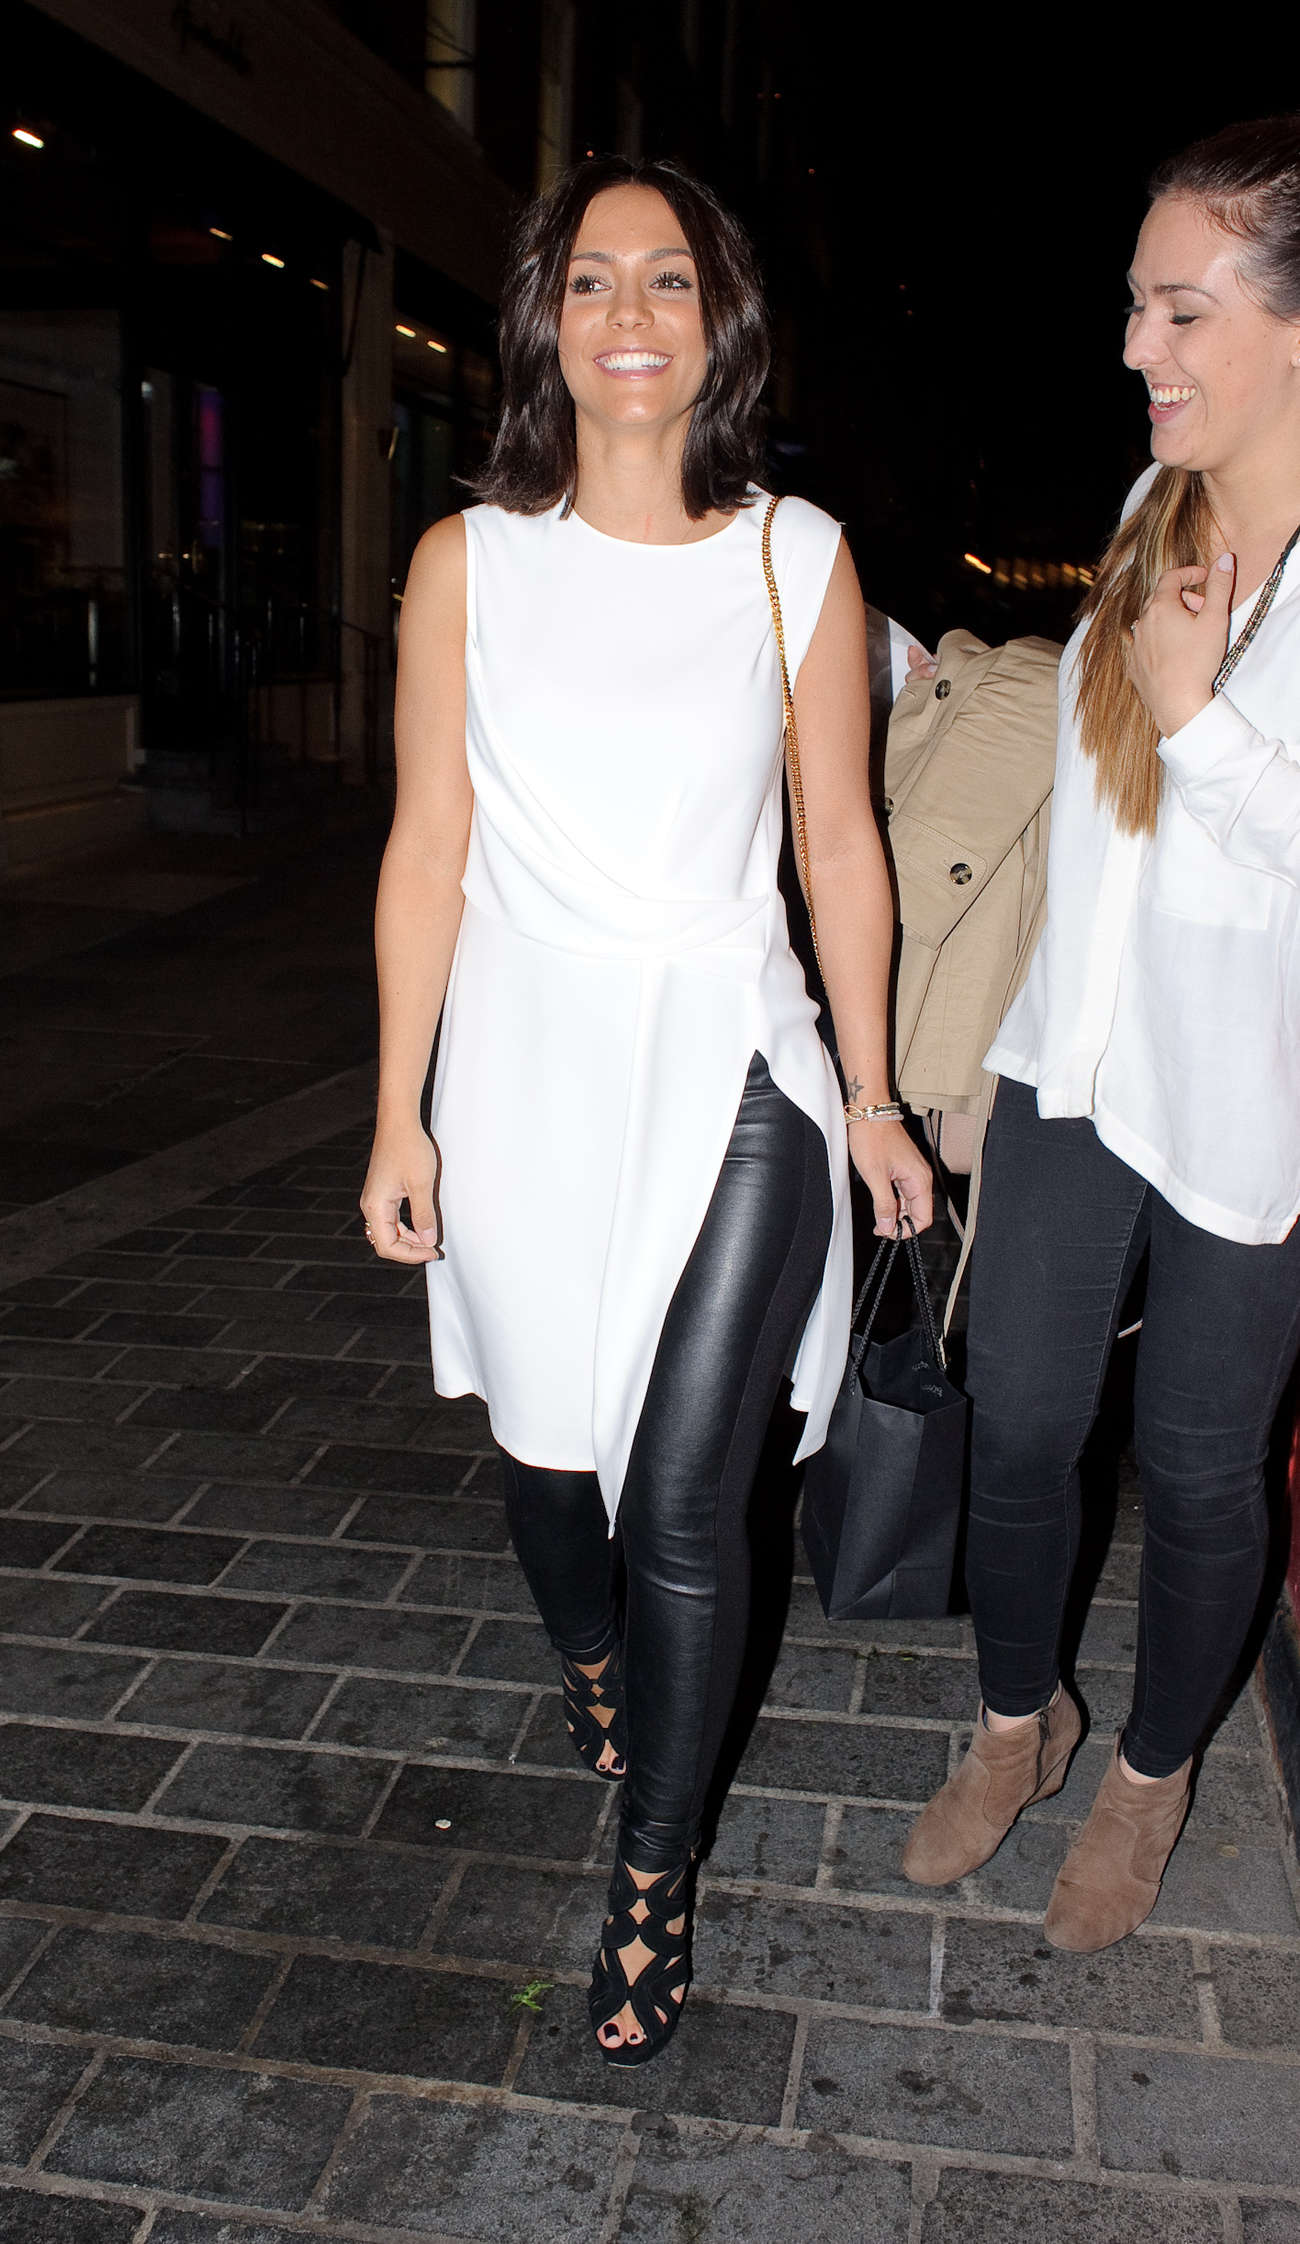 Frankie Sandford go out in London